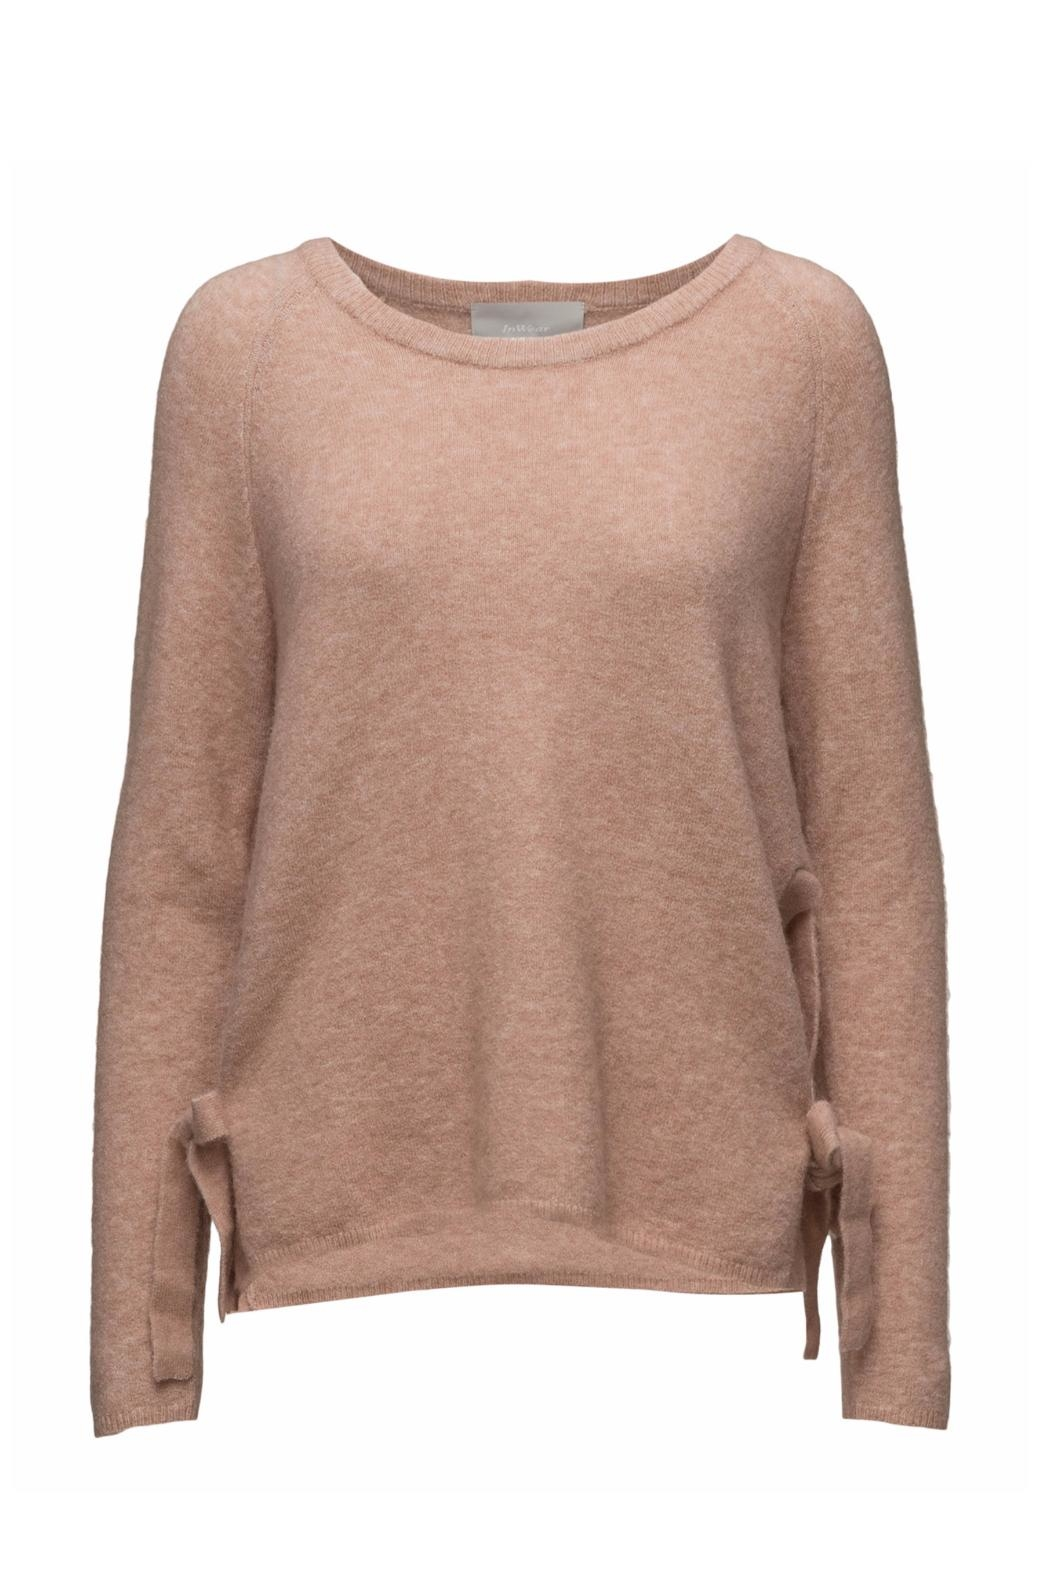 Inwear Wool Blend Pullover - Main Image